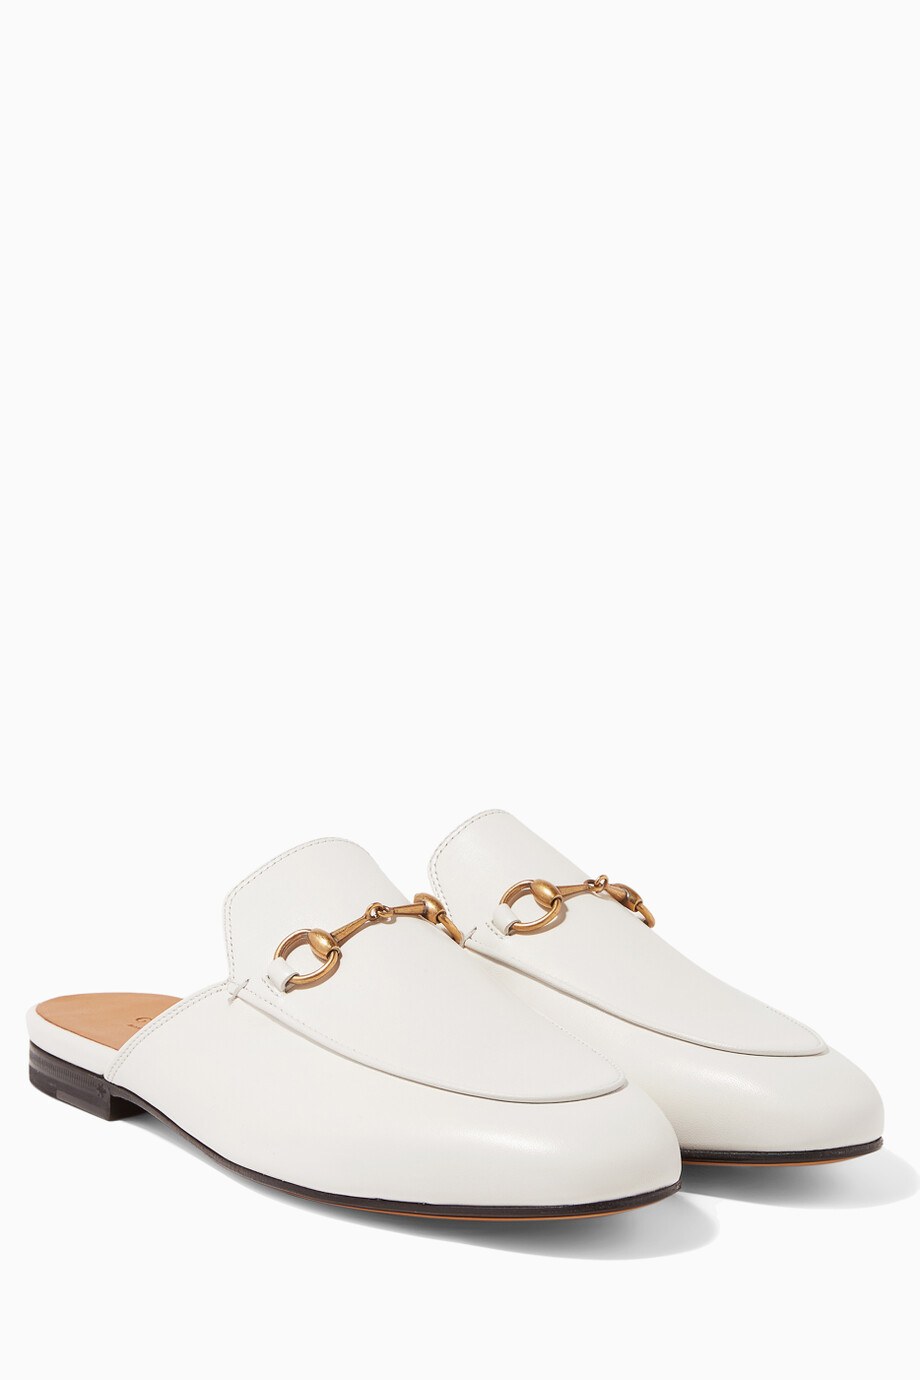 dbb171d9 Shop Gucci White Mystic White Leather Princetown Loafer for Women ...